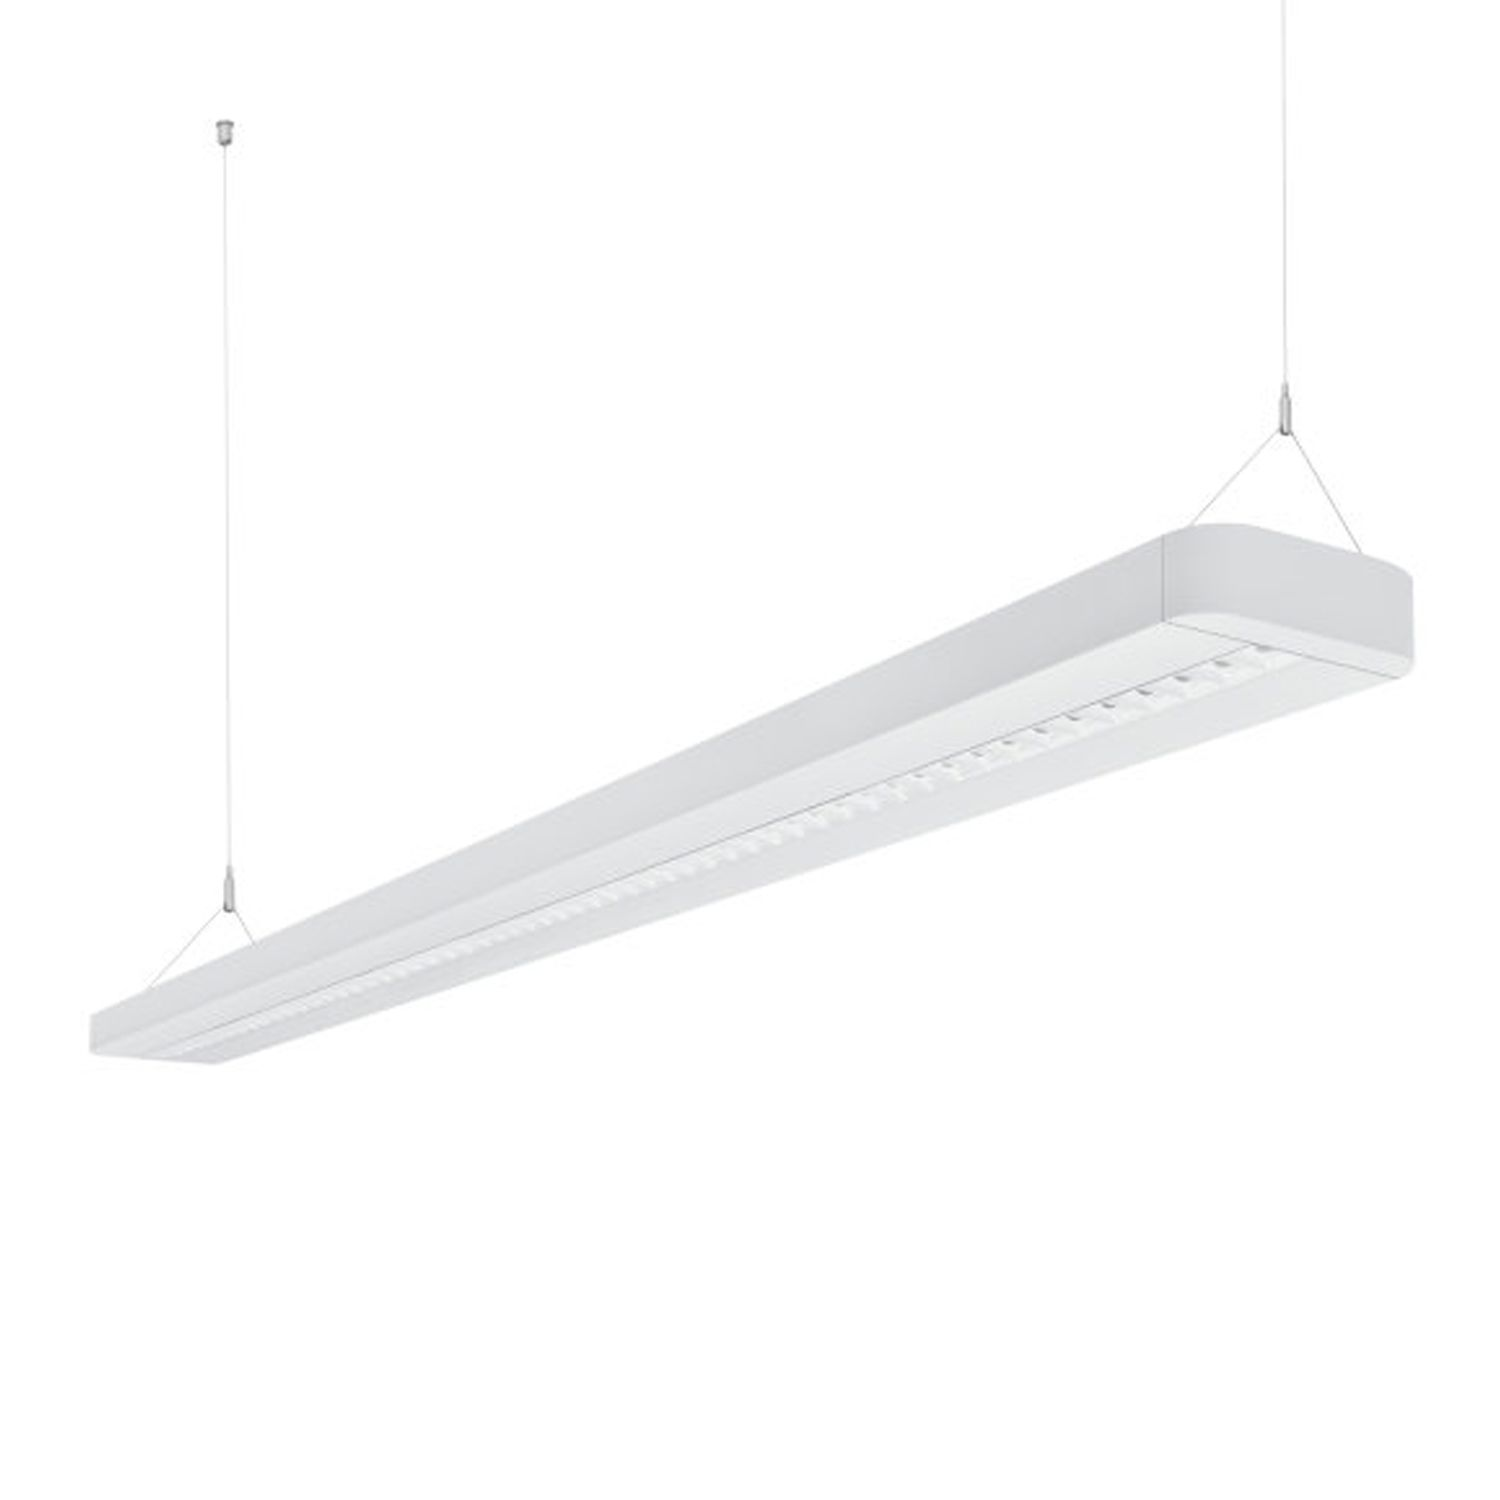 Ledvance LINEAR IndiviLED DIRECT 48W 150cm 4000K  | Dali Dimmable - Blanc Chaud